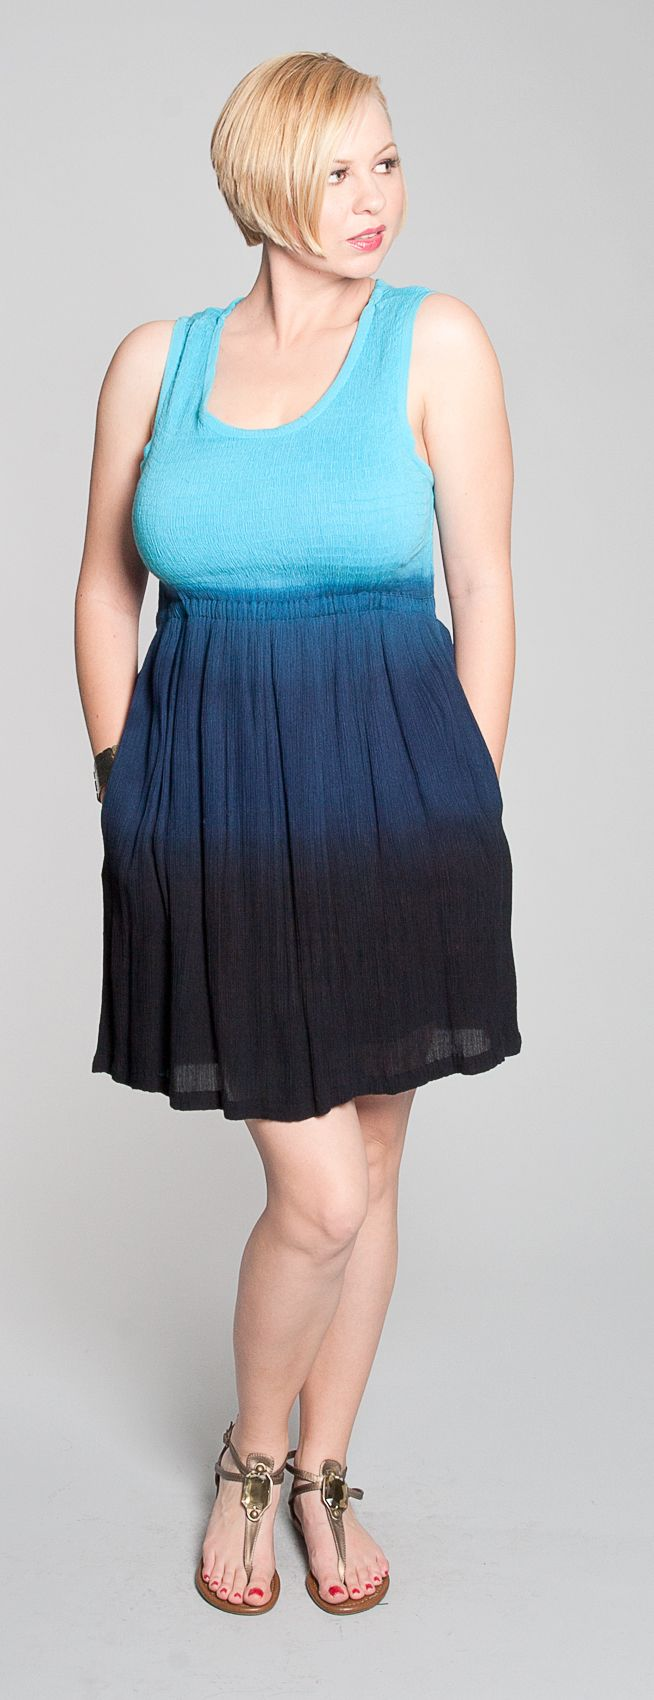 Blue ombre dress by 525 America. $26 (My awesome friend Mary again!)